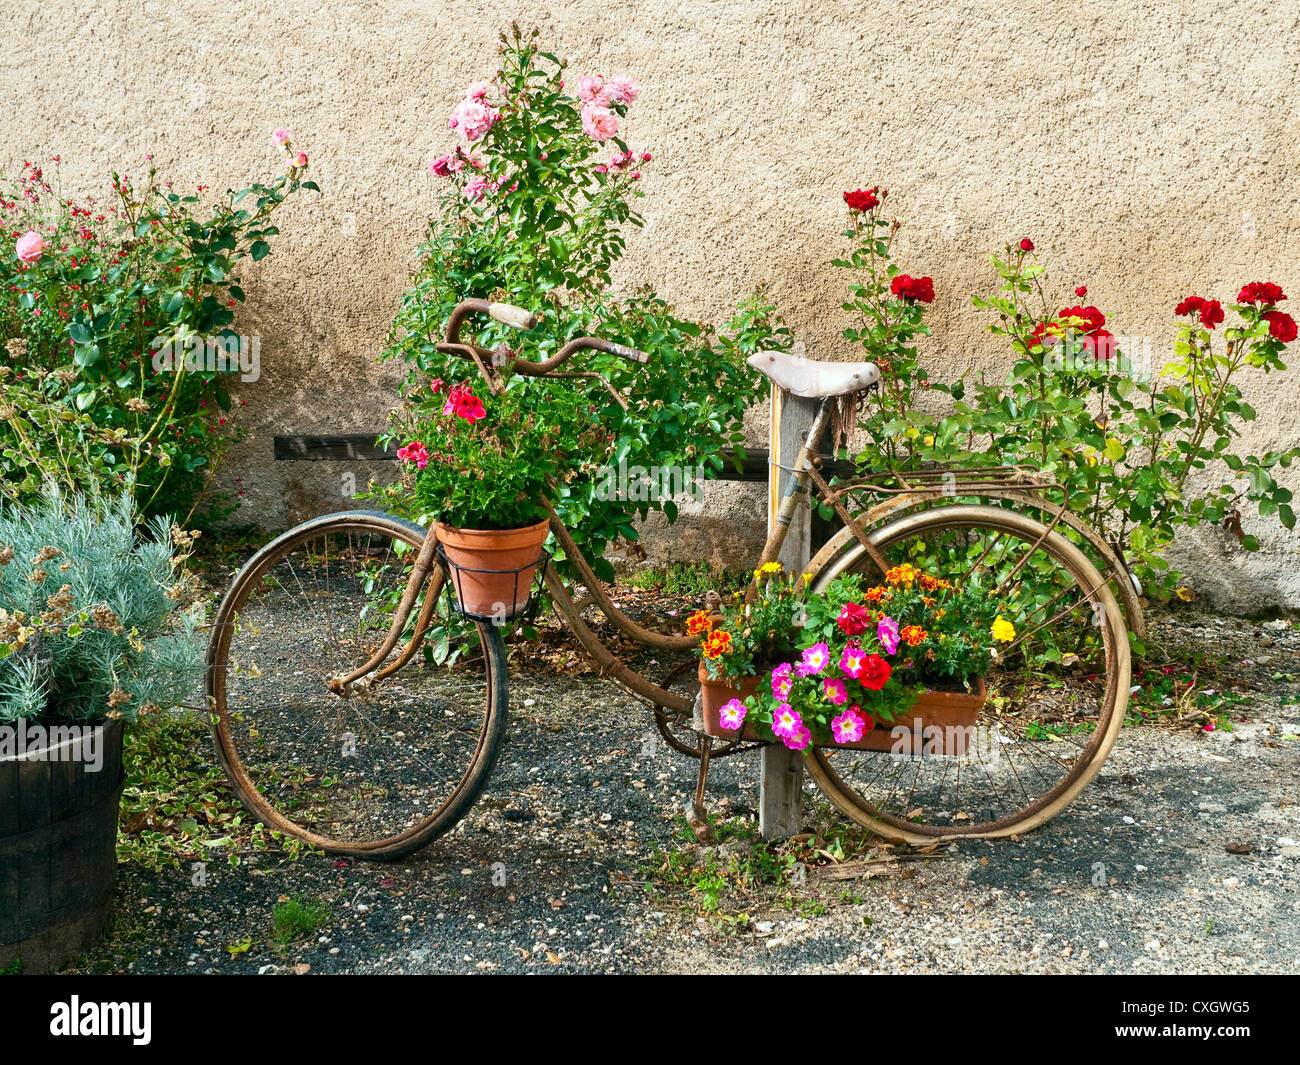 Rusty bicycle used a flower display - France. - Stock Image